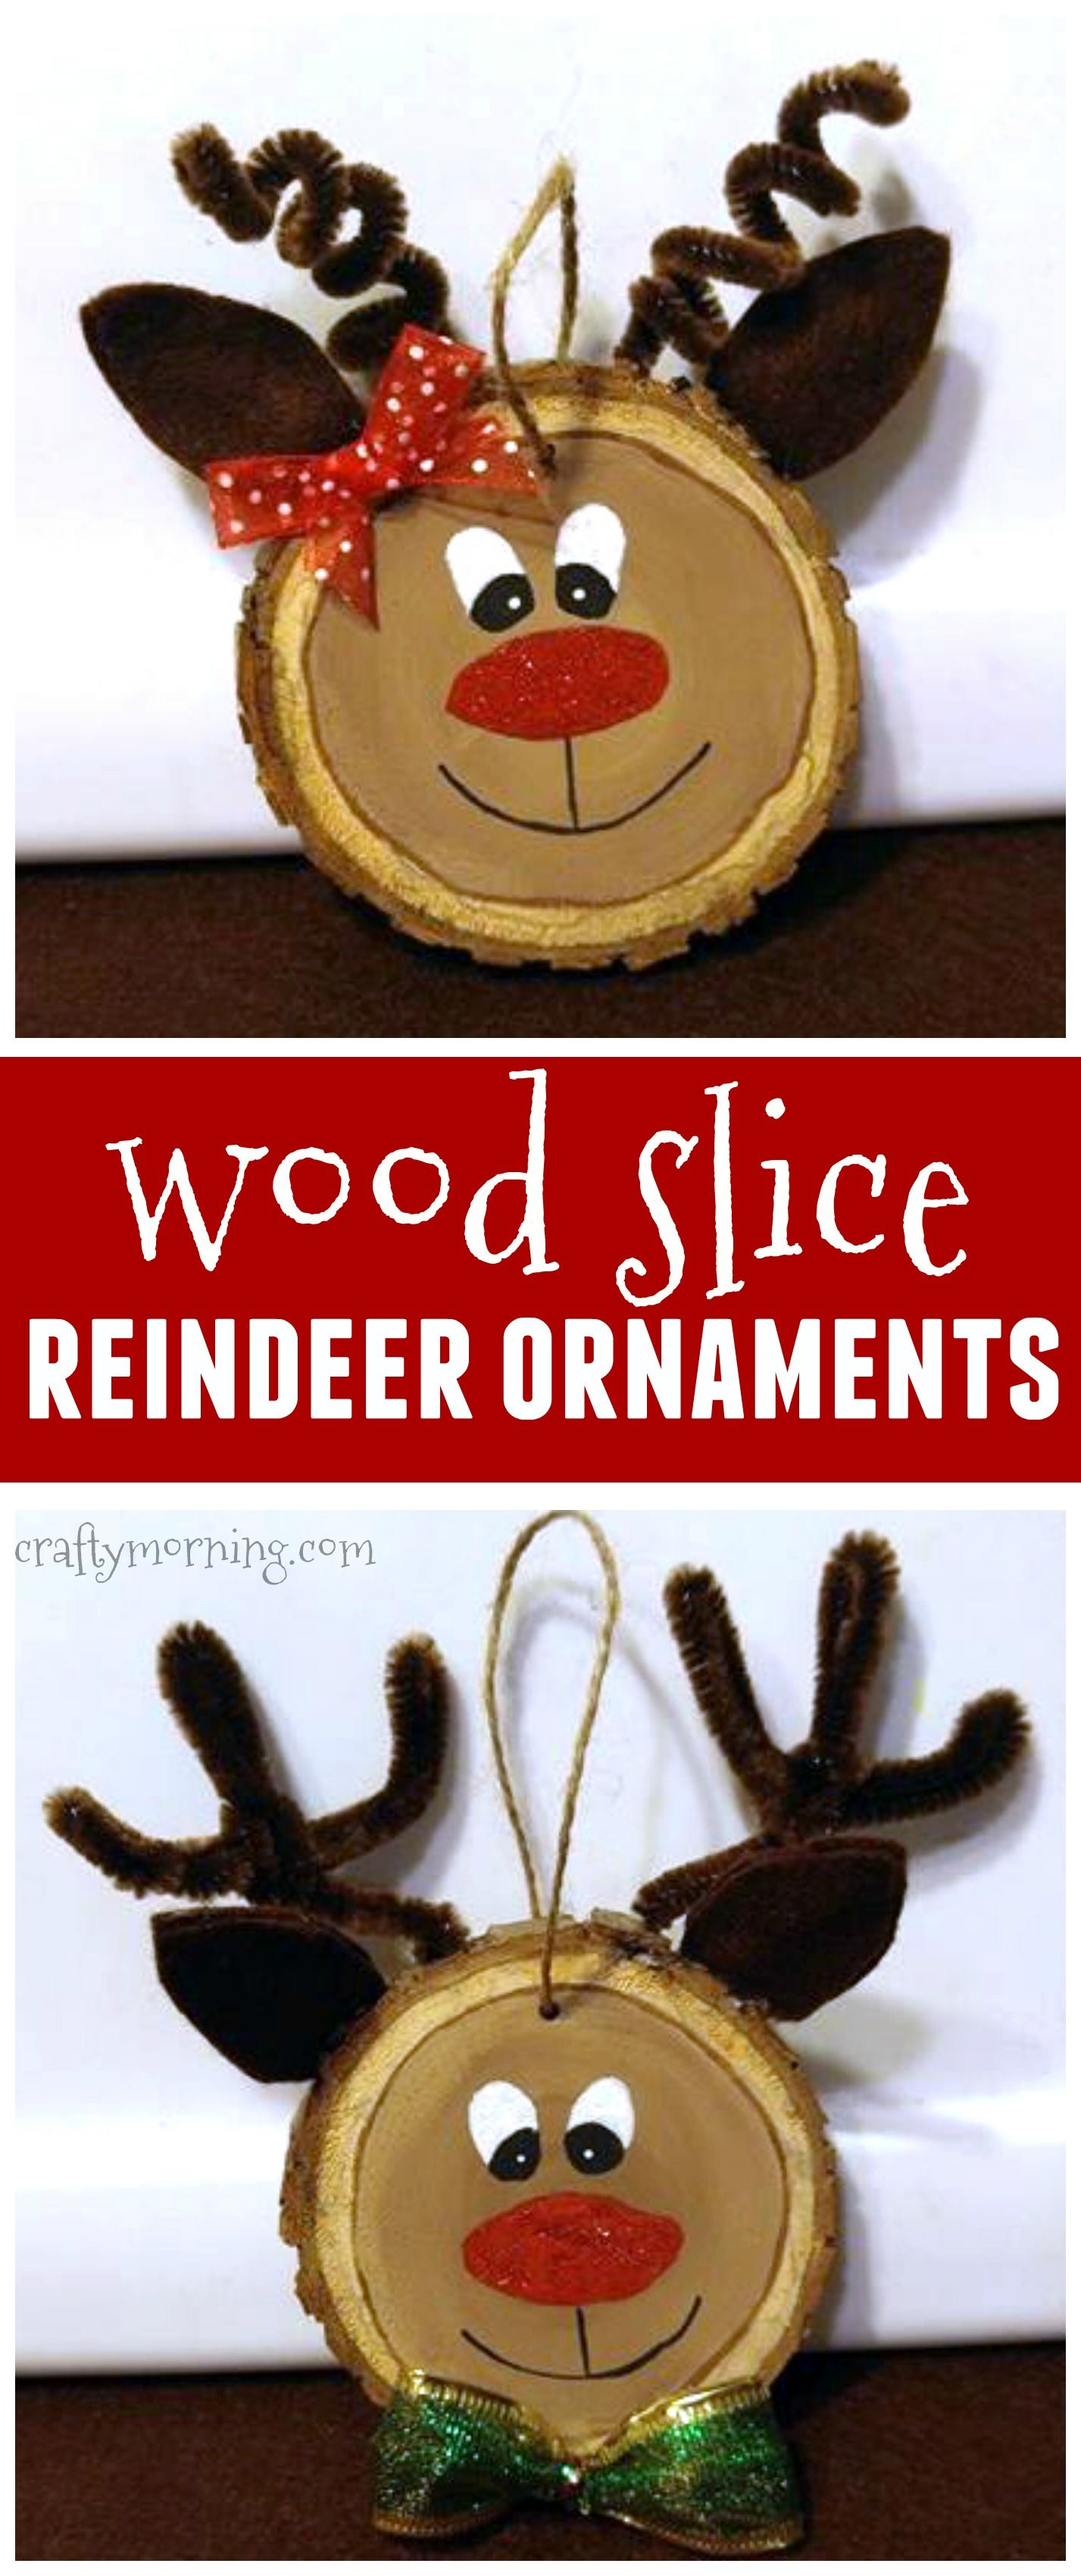 Wood slice reindeer ornaments for a kids Christmas craft